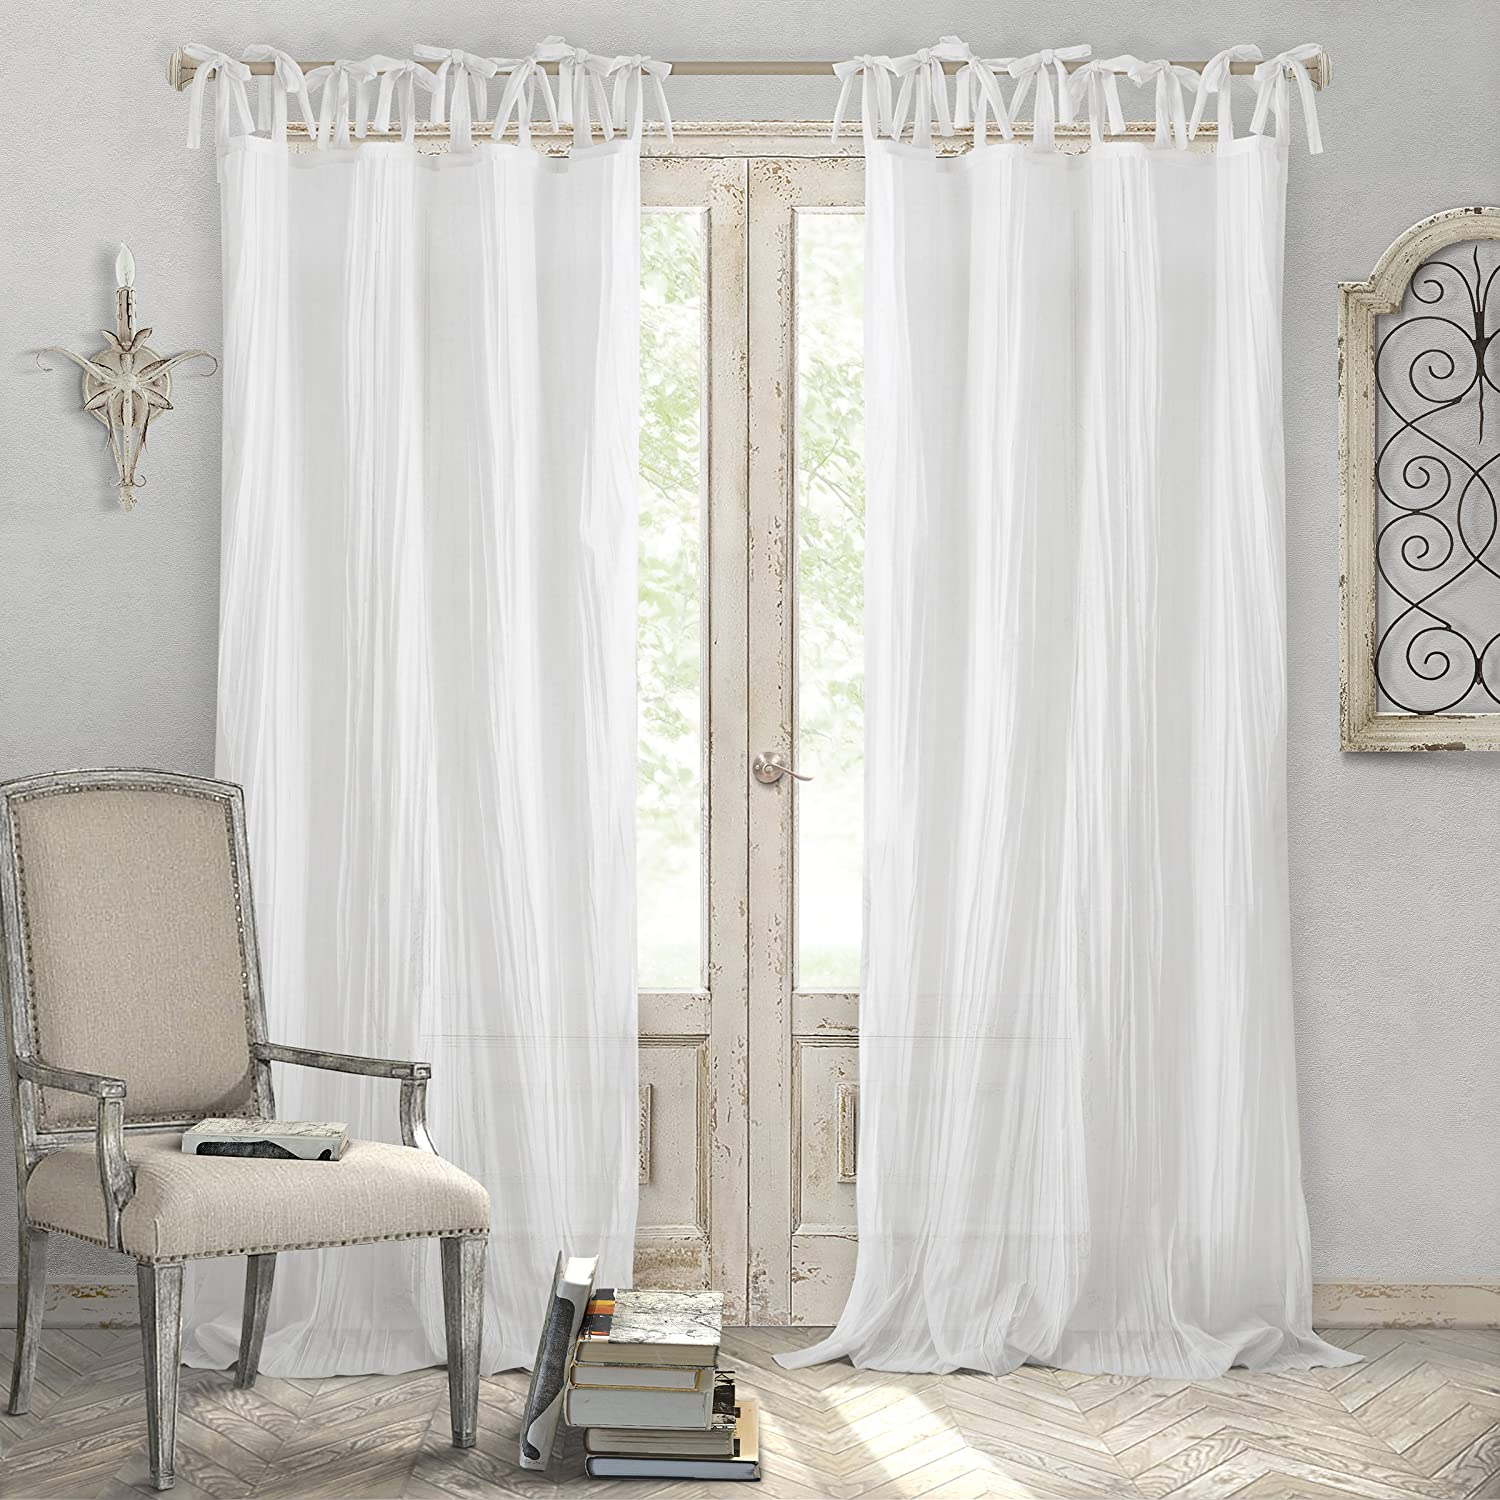 "Elrene Home Fashions Crushed Semi-Sheer Adjustable Tie Top Single Panel Window Curtain Drape 52"" x 108"" (1), White"